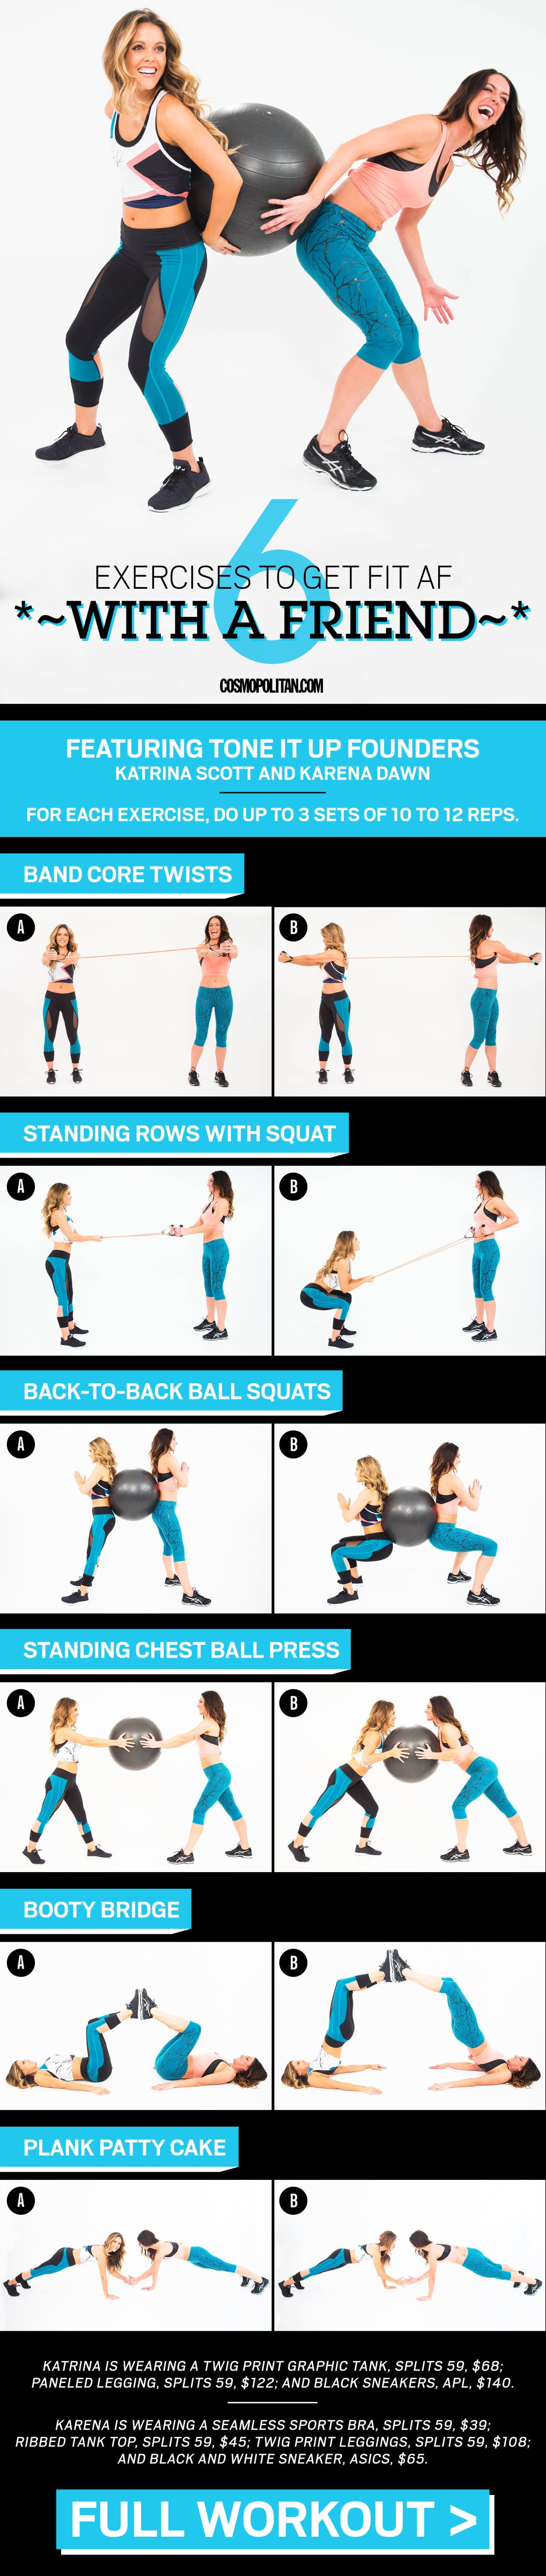 PARTNER WORKOUT: To make exercise more fun, recruit a friend and try these moves, designed and demonstrated by Katrina Scott and Karena Dawn, IRL friends and the trainers behind the Tone It Up fitness empire. Click through for the full workout routine that you can do at home or at the gym. This full body workout will tone and strengthen your entire body!